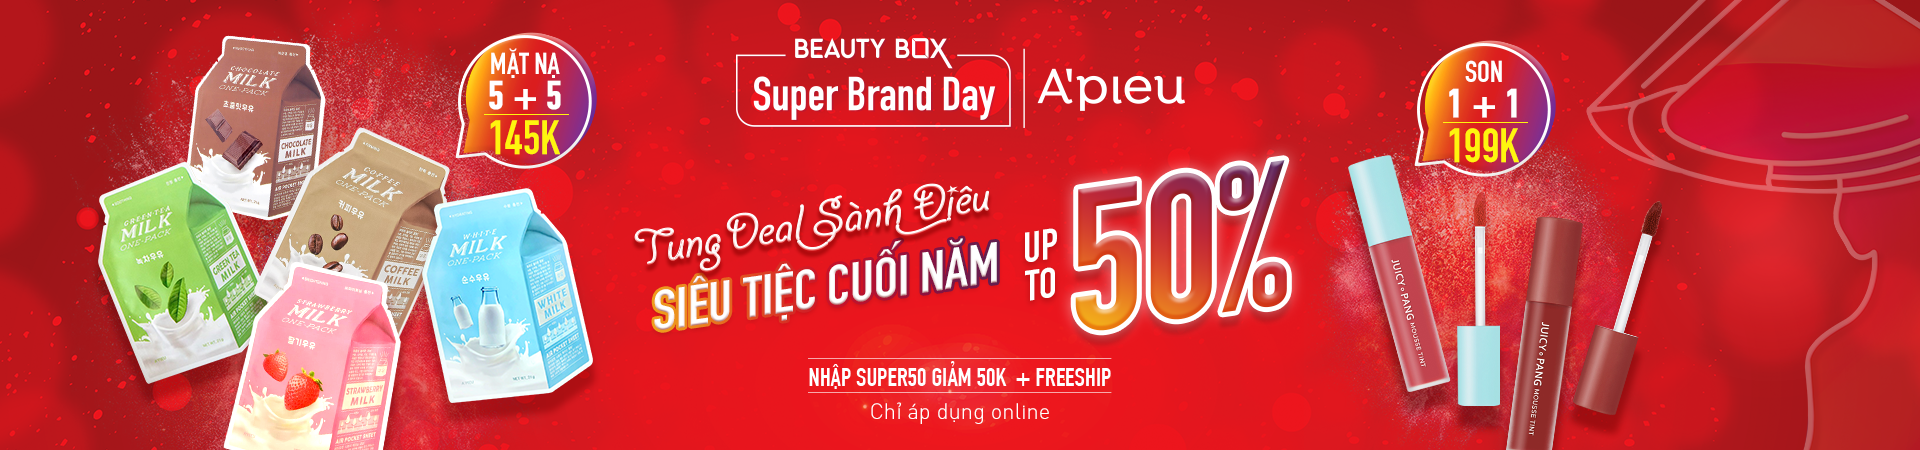 A'PIEU - SUPPER BRAND DAY